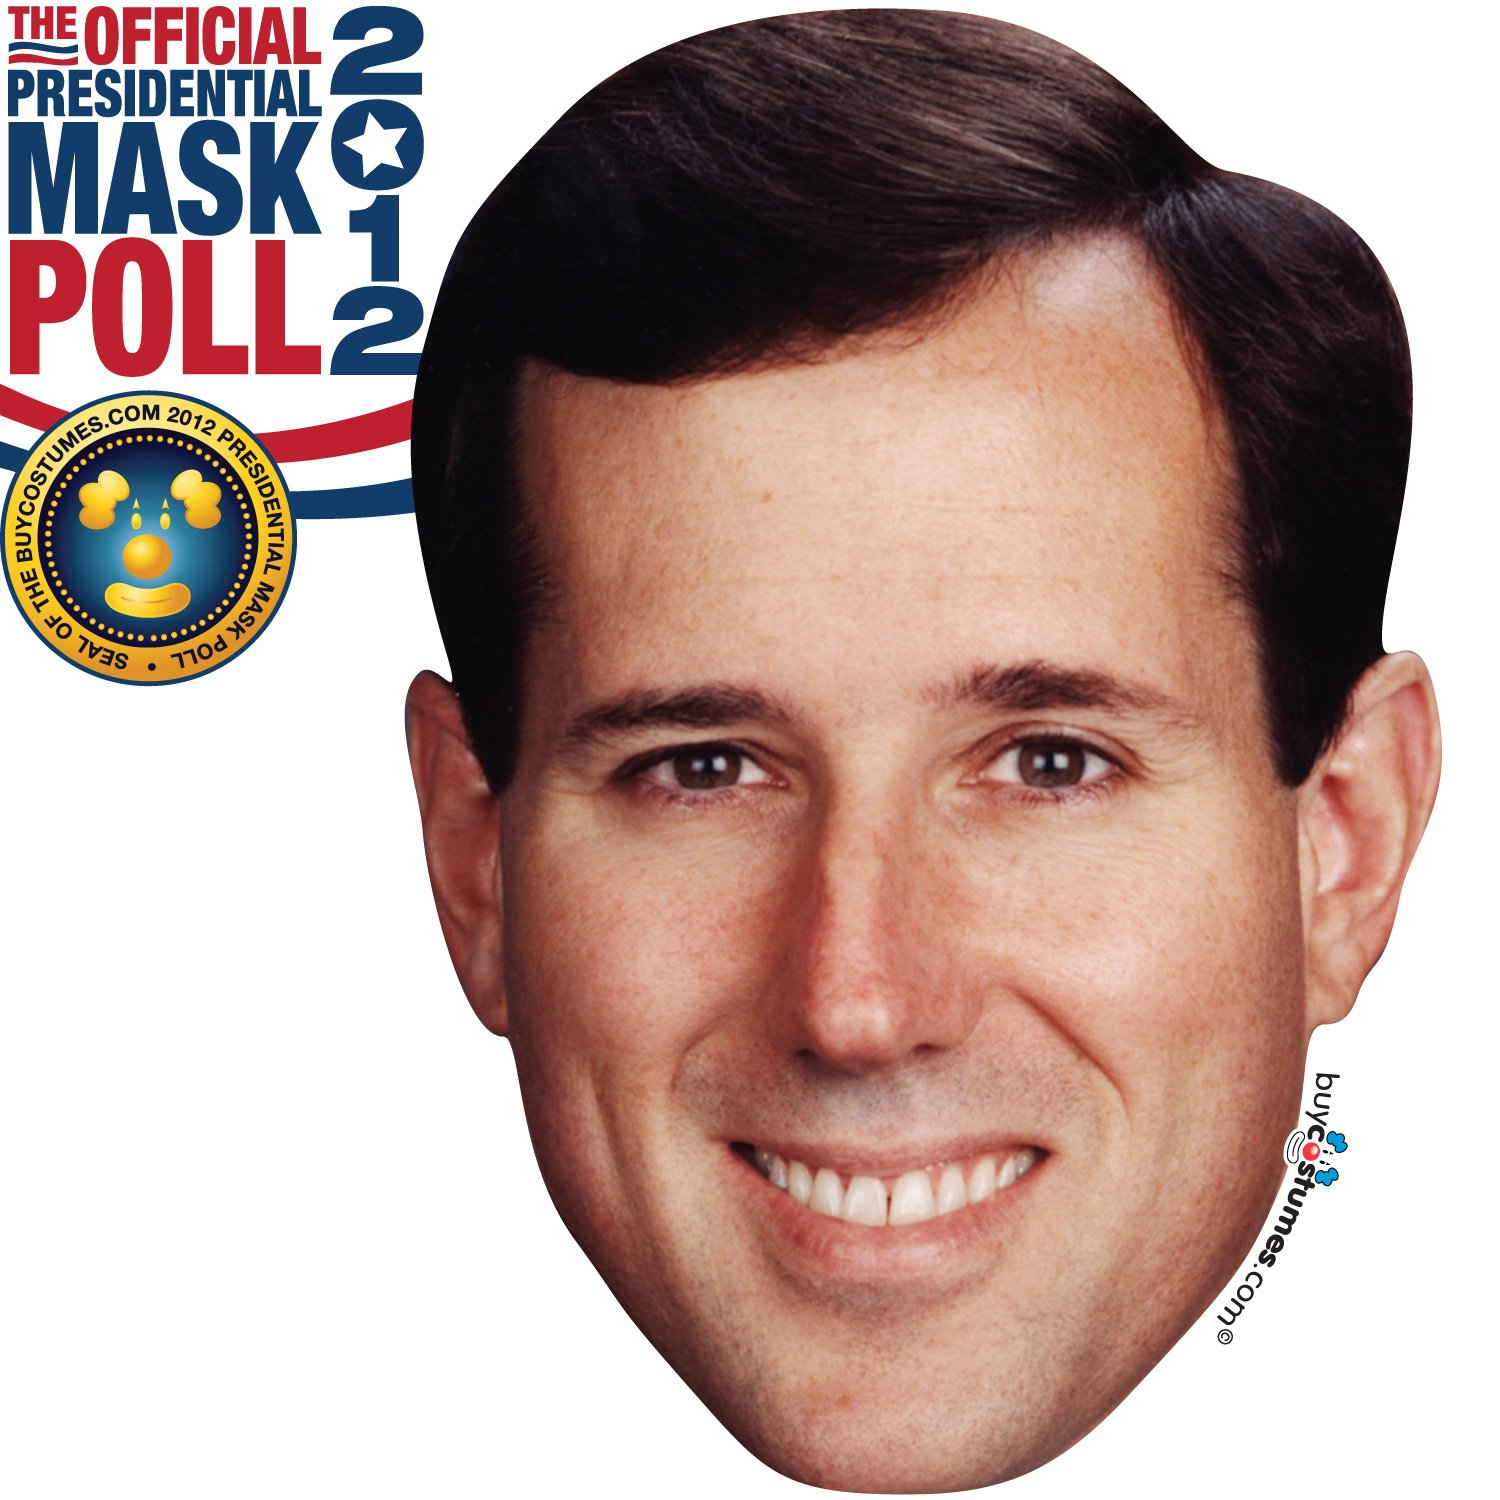 Rick Santorum Mask